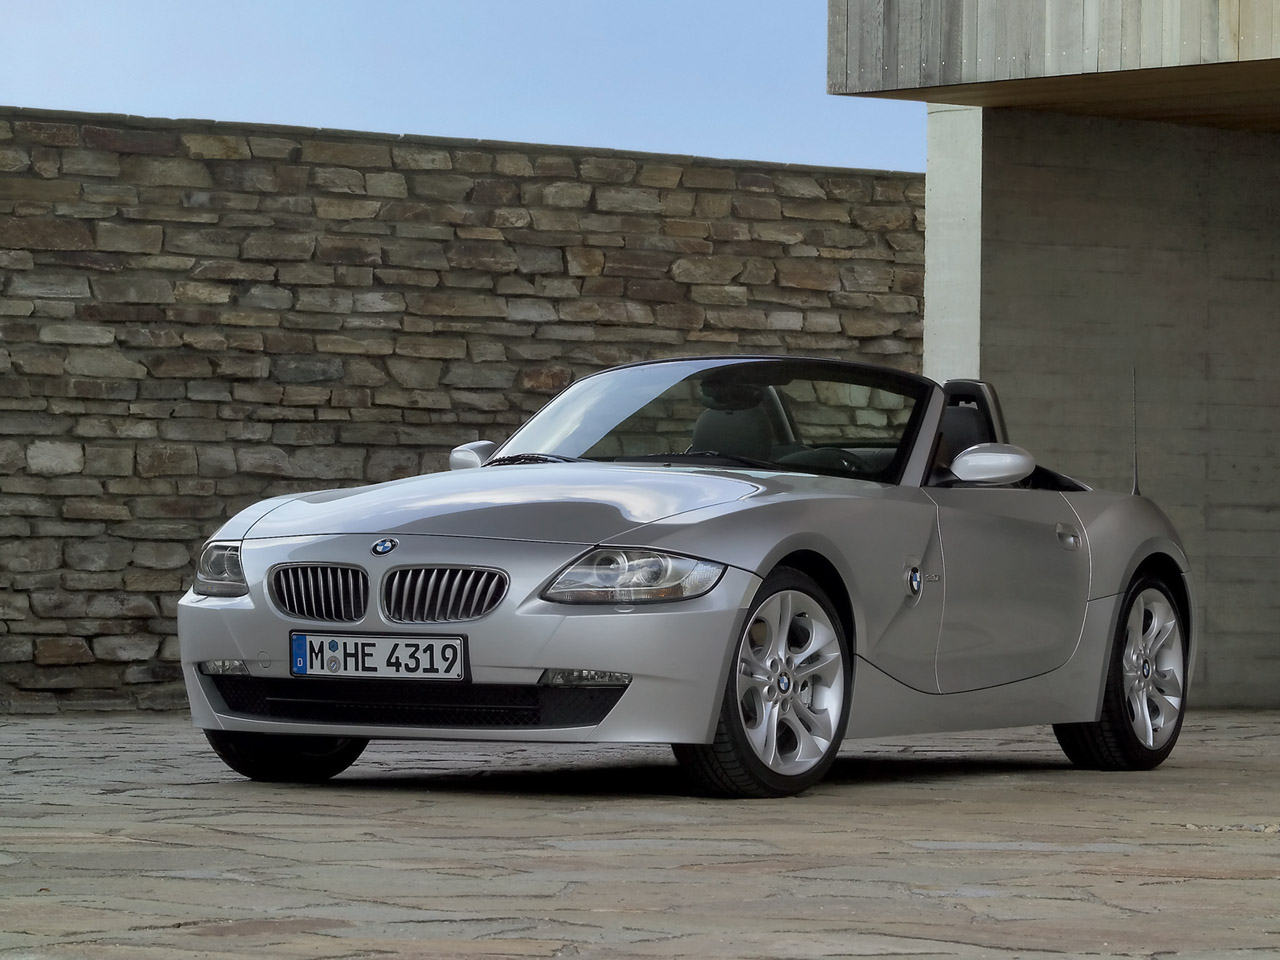 2006 BMW Z4 Roadster Convertible 2-door